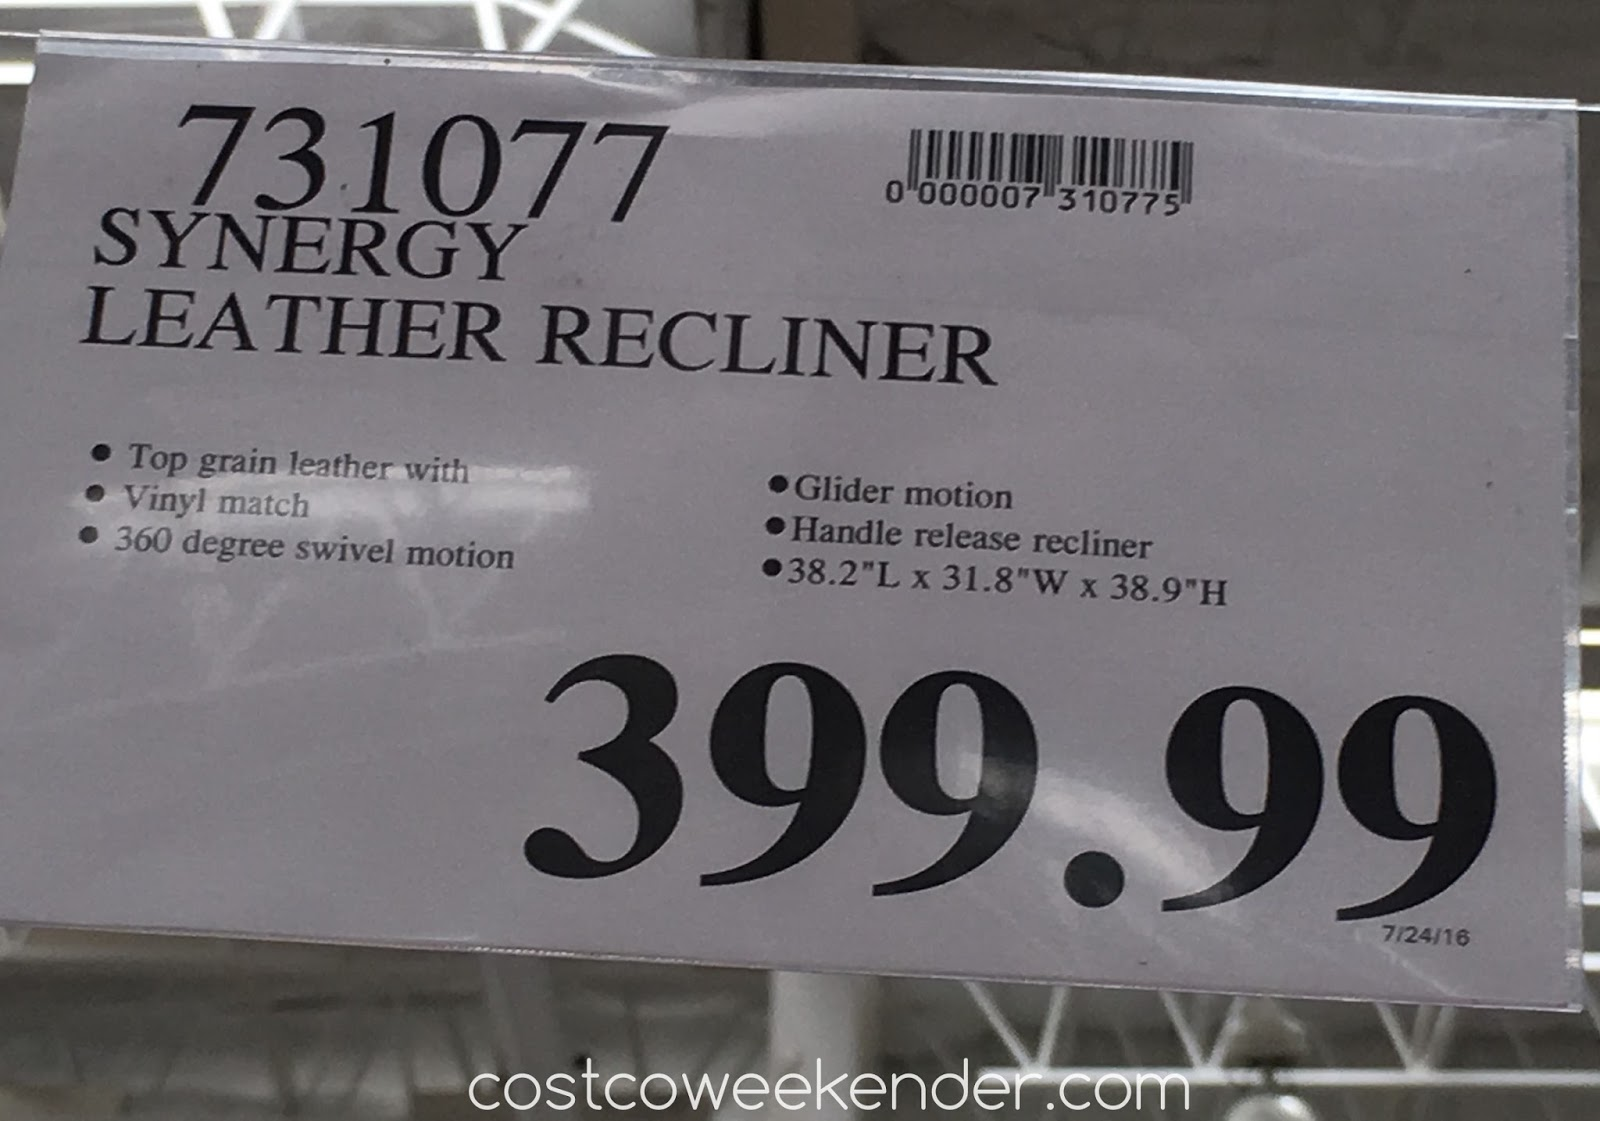 Merveilleux Deal For The Synergy Leather Recliner Chair At Costco